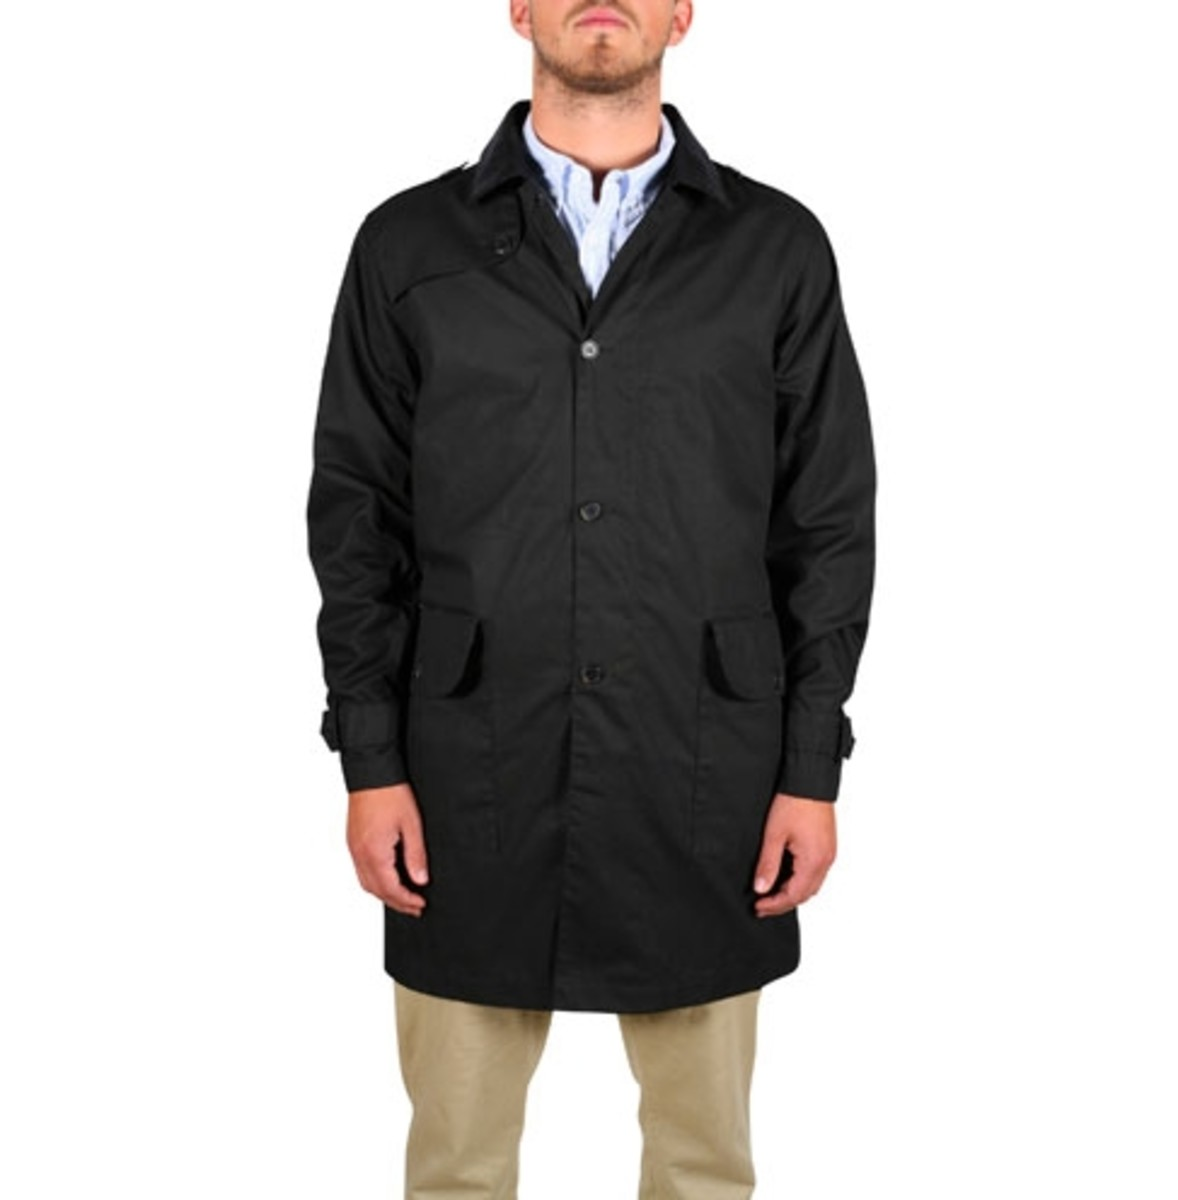 Penfield SS2011 Jackets 11